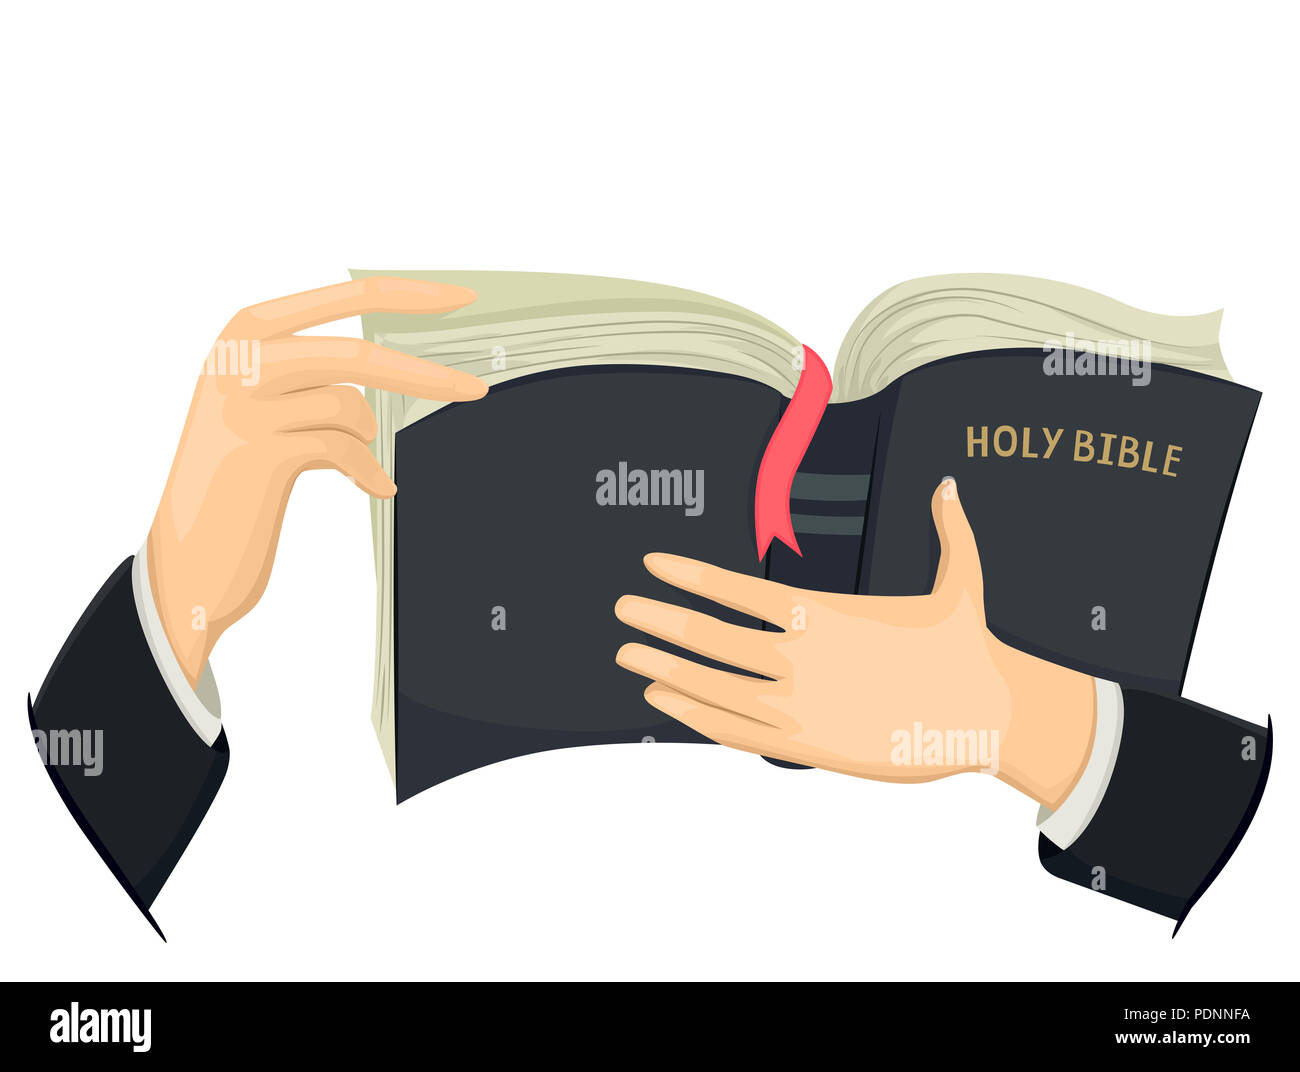 hight resolution of illustration of hands of a priest holding a holy bible stock image